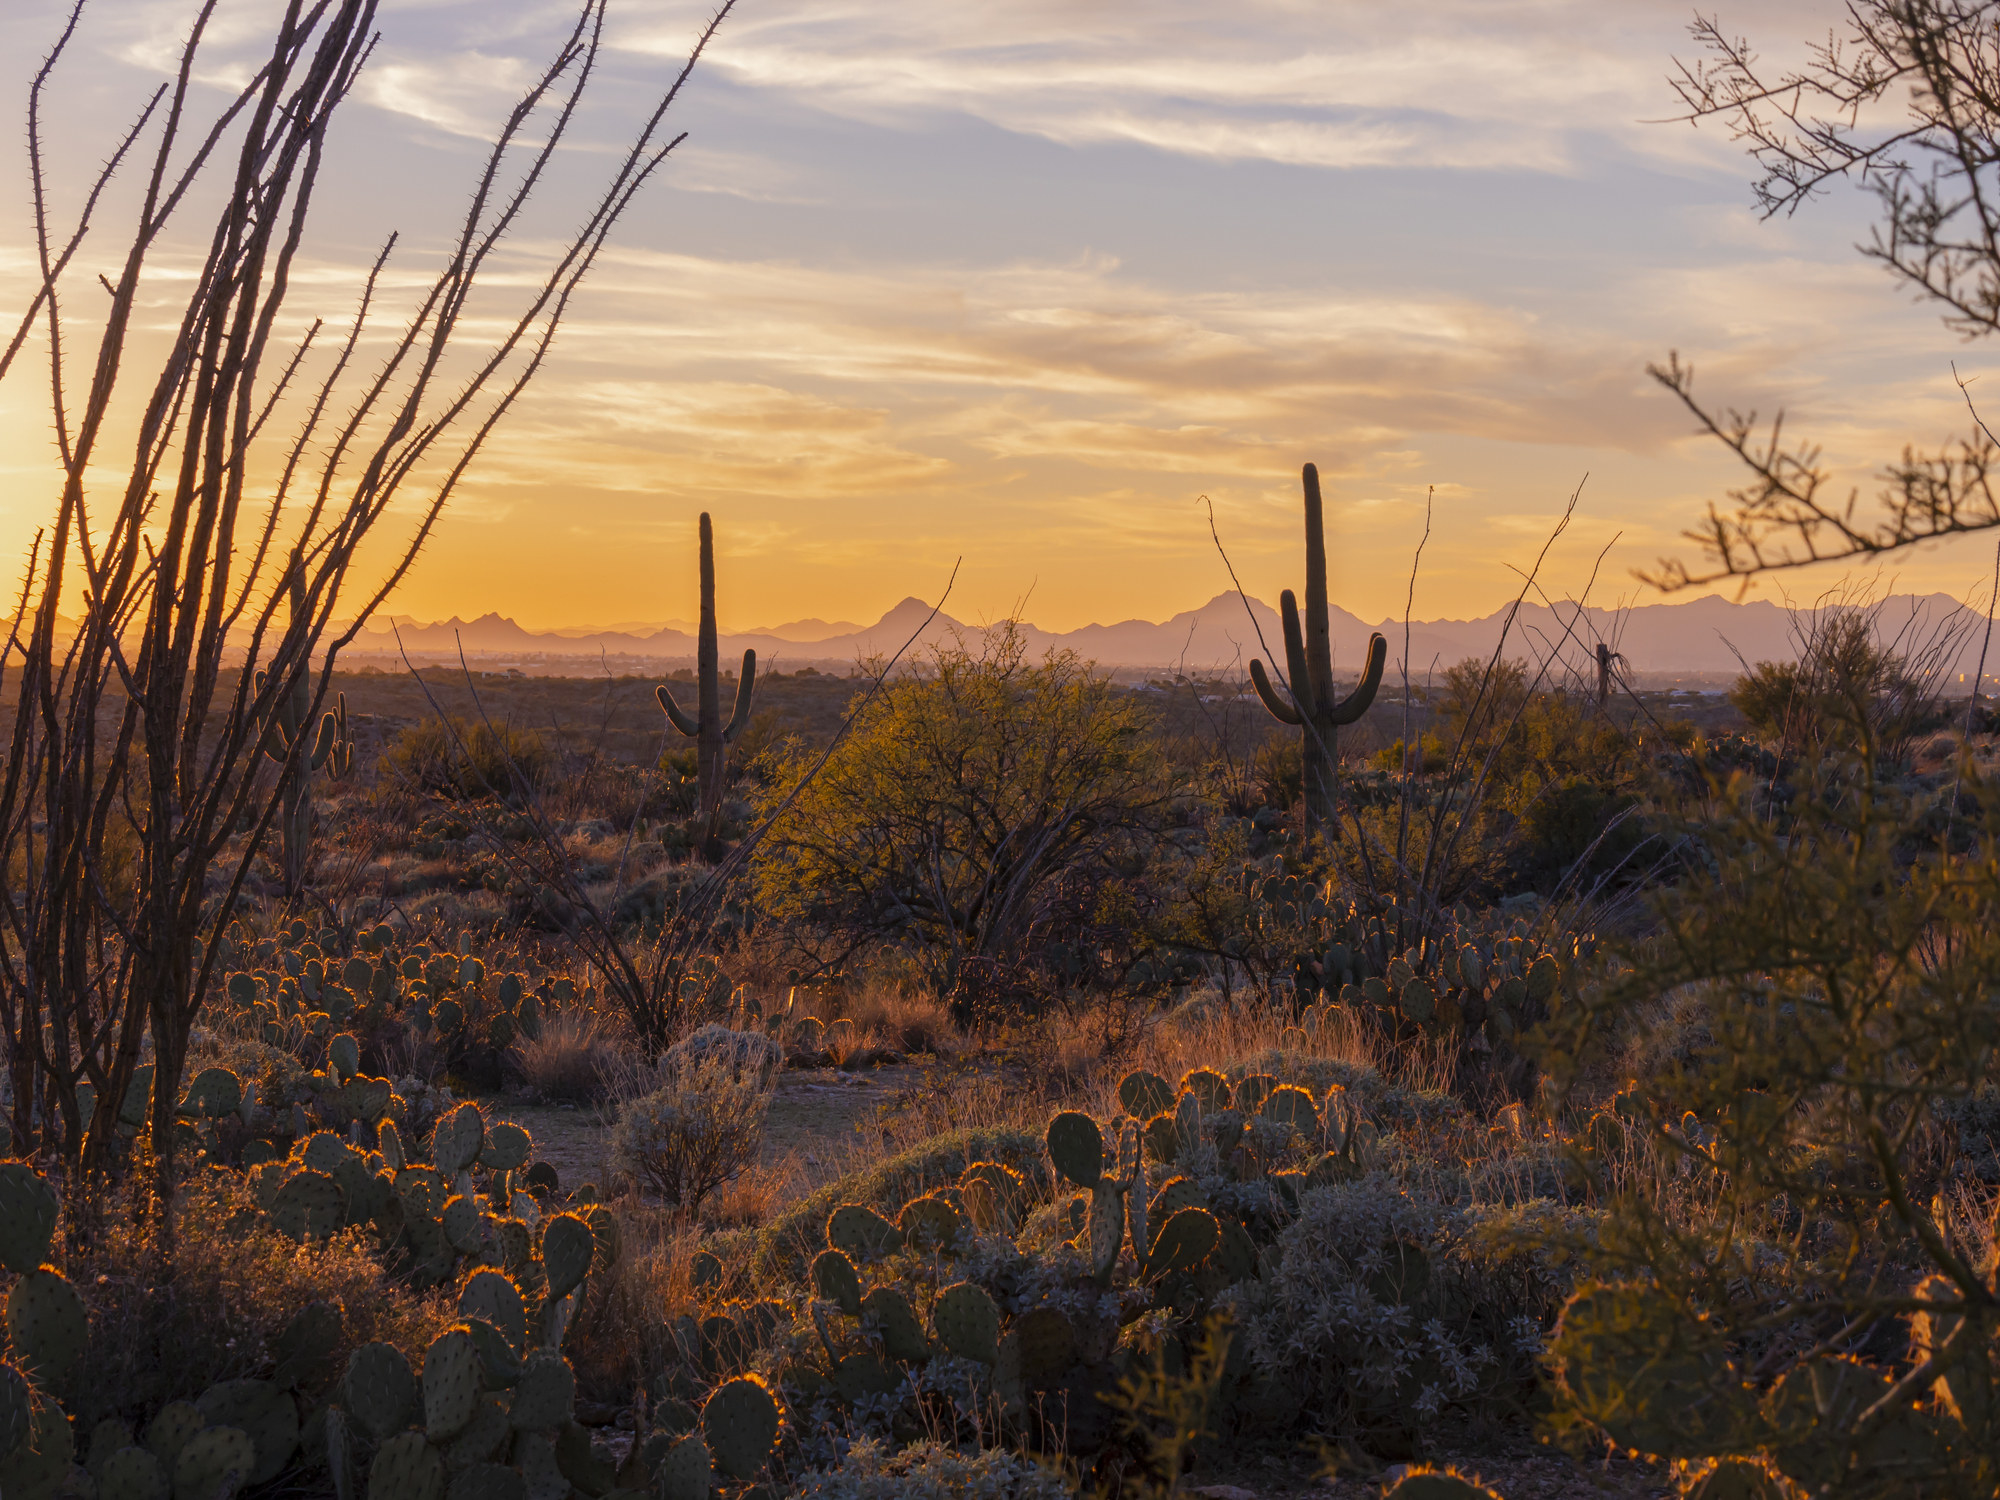 Sunset over the Arizona desert with two cacti in the background